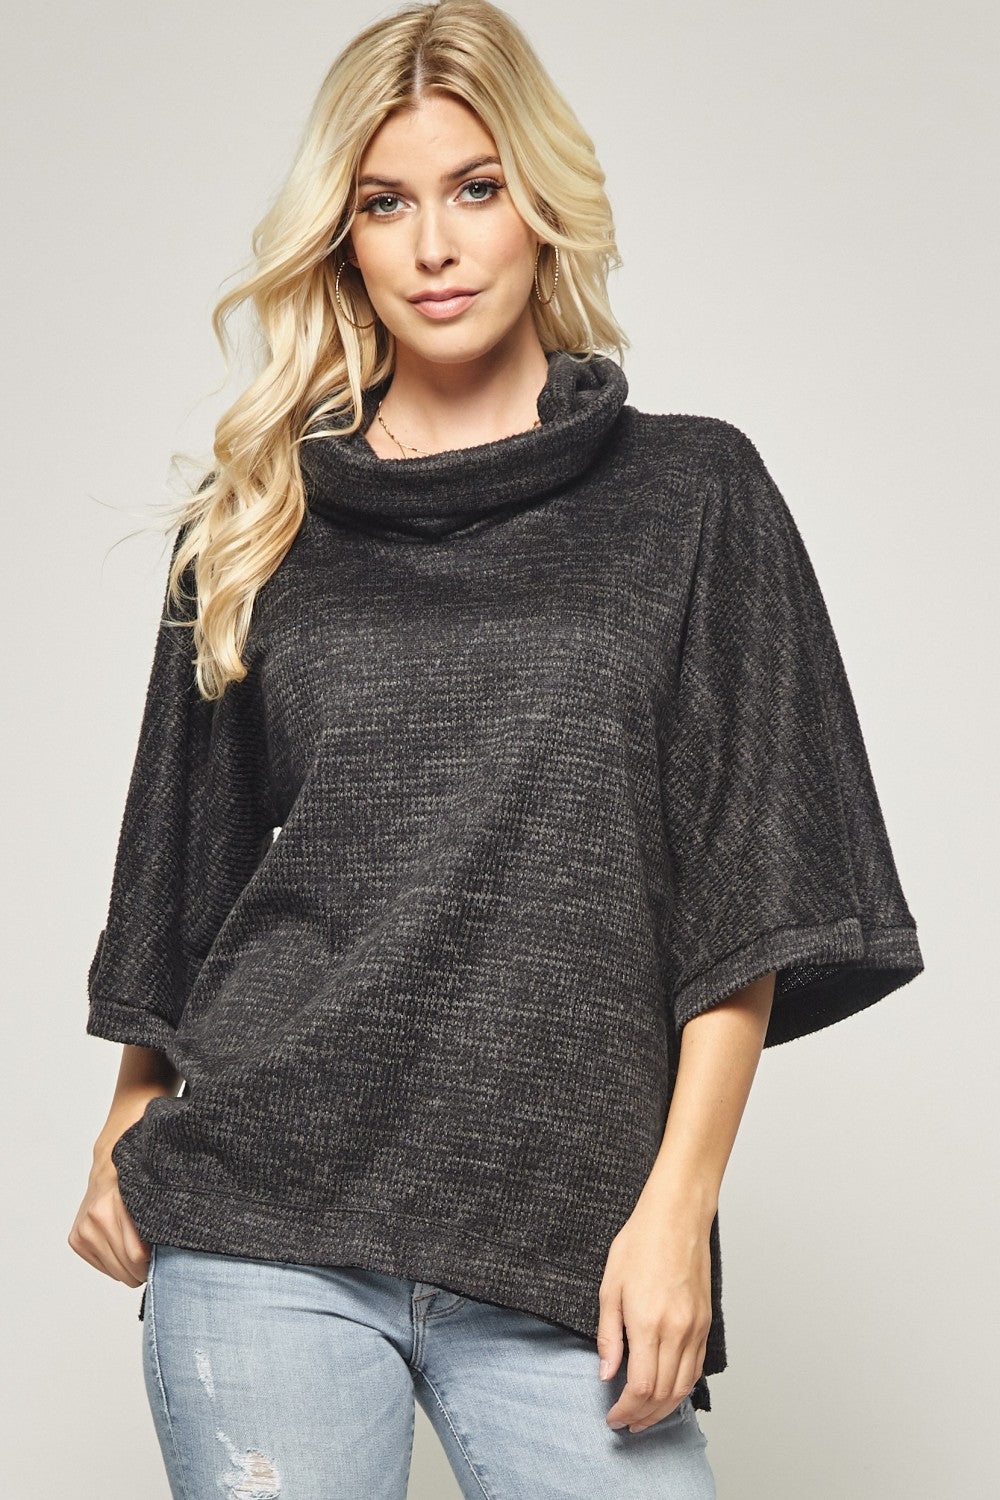 Cowl Neck Knit Sweater Tunic in Dark Grey